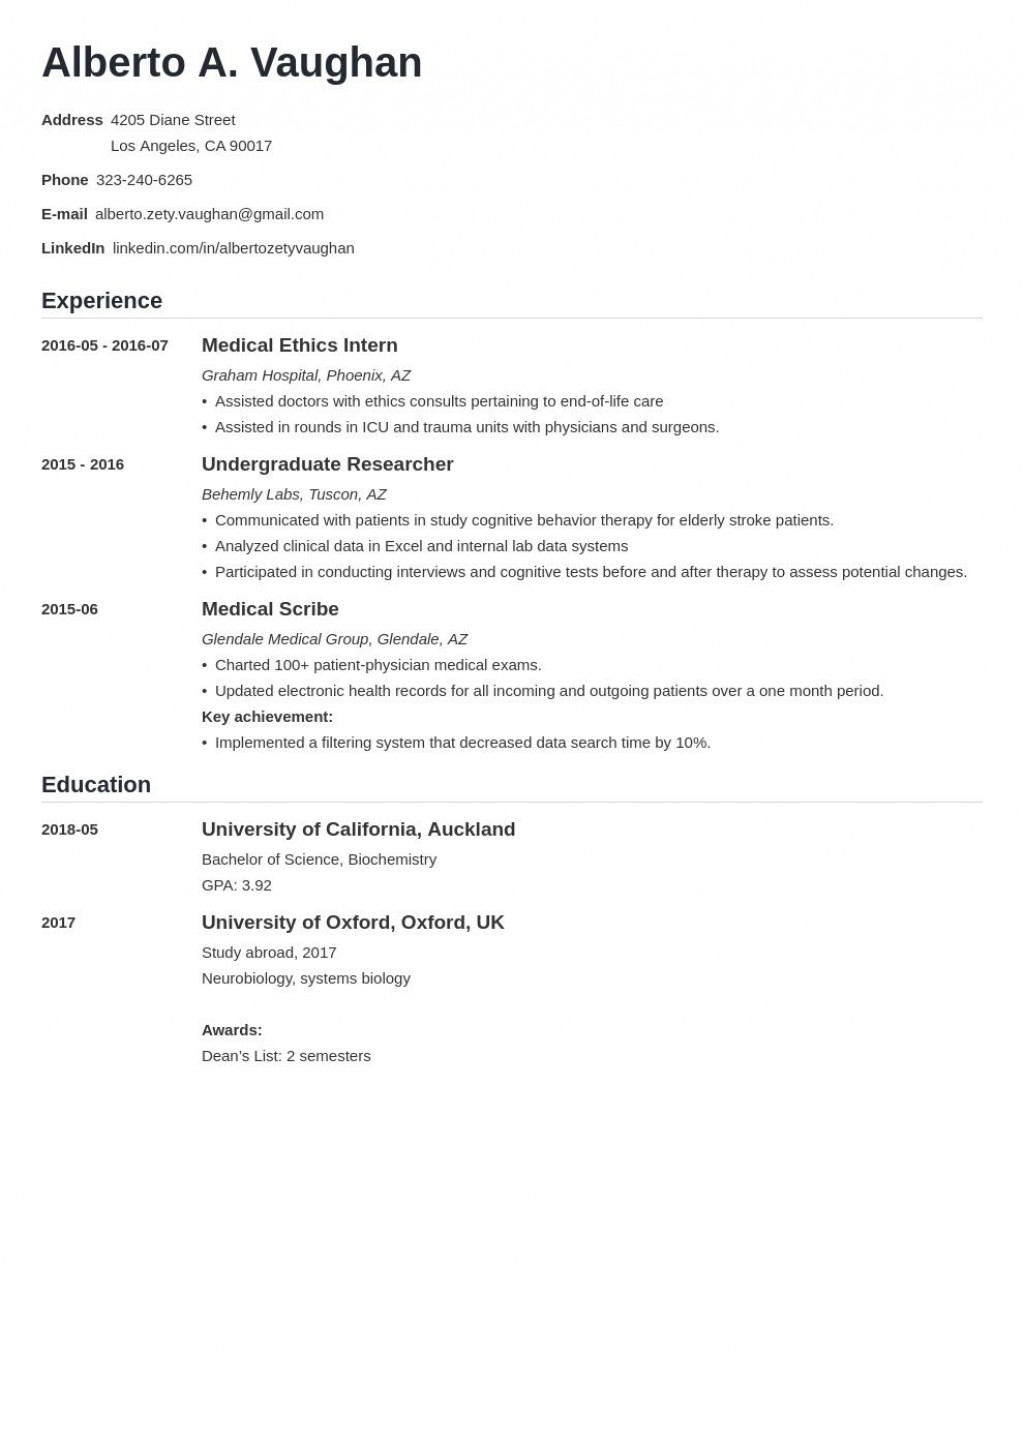 008 Frightening Curriculum Vitae Template Student High Def  Sample College Undergraduate Example For Research PaperLarge